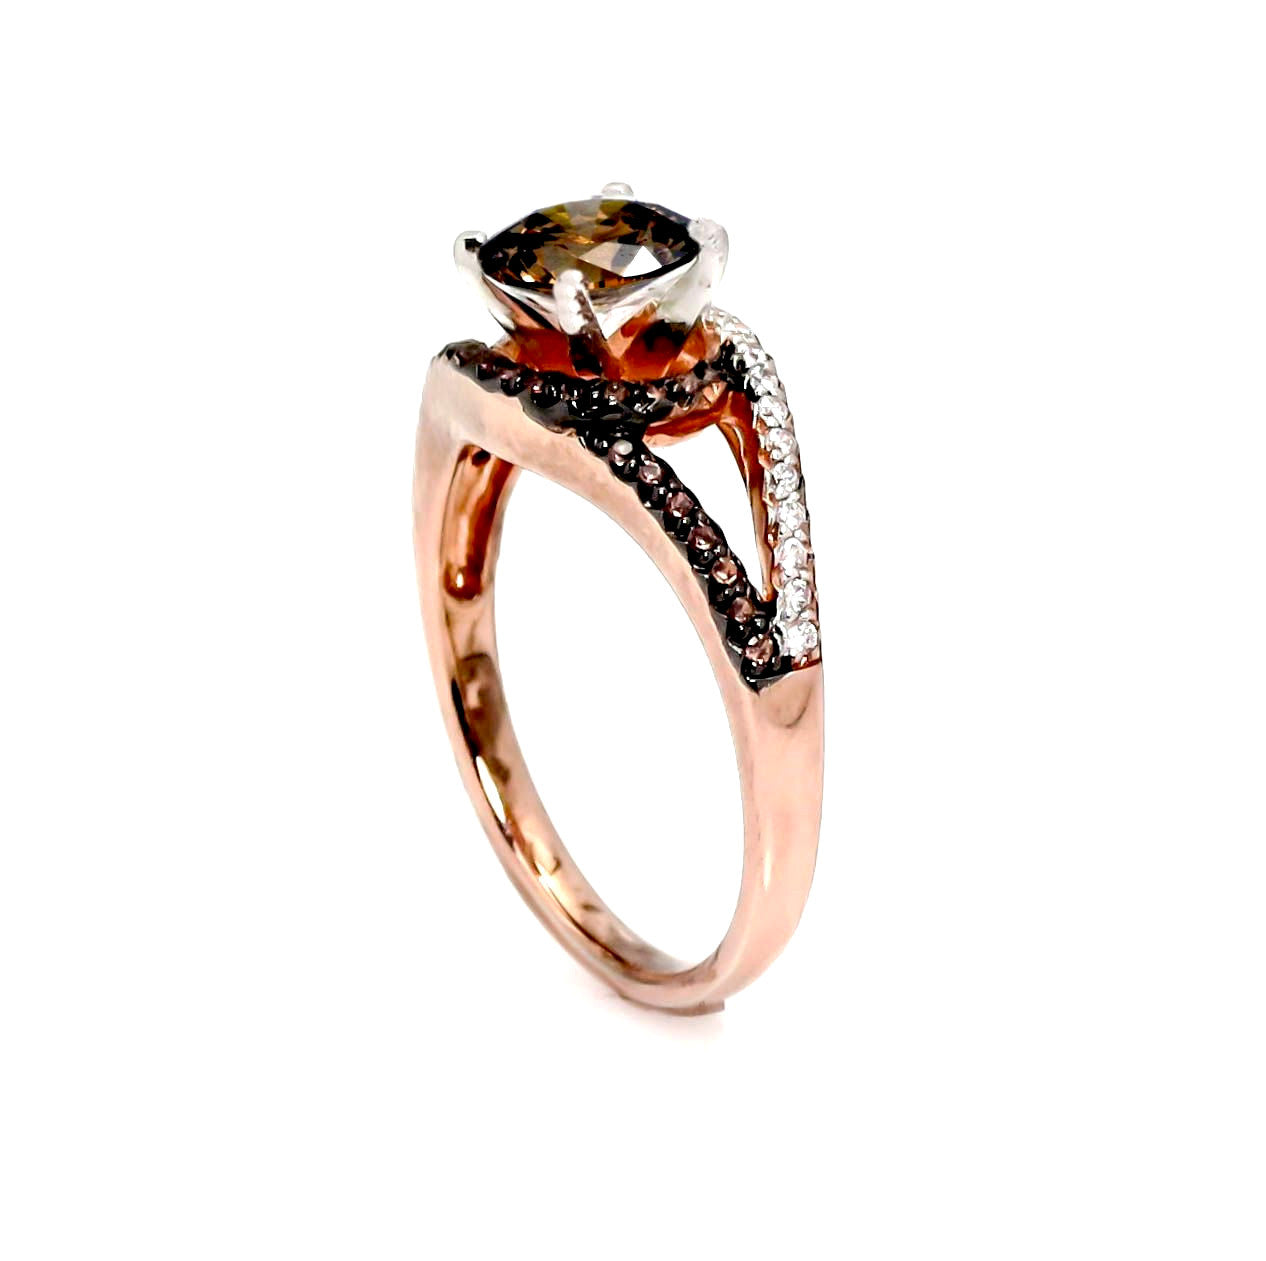 Unique 1 Carat Fancy Brown Smoky Quartz, Floating Halo Rose Gold Engagement Ring, .27 Carat White & Fancy Brown Diamonds, Split Shank - SQ94648ER